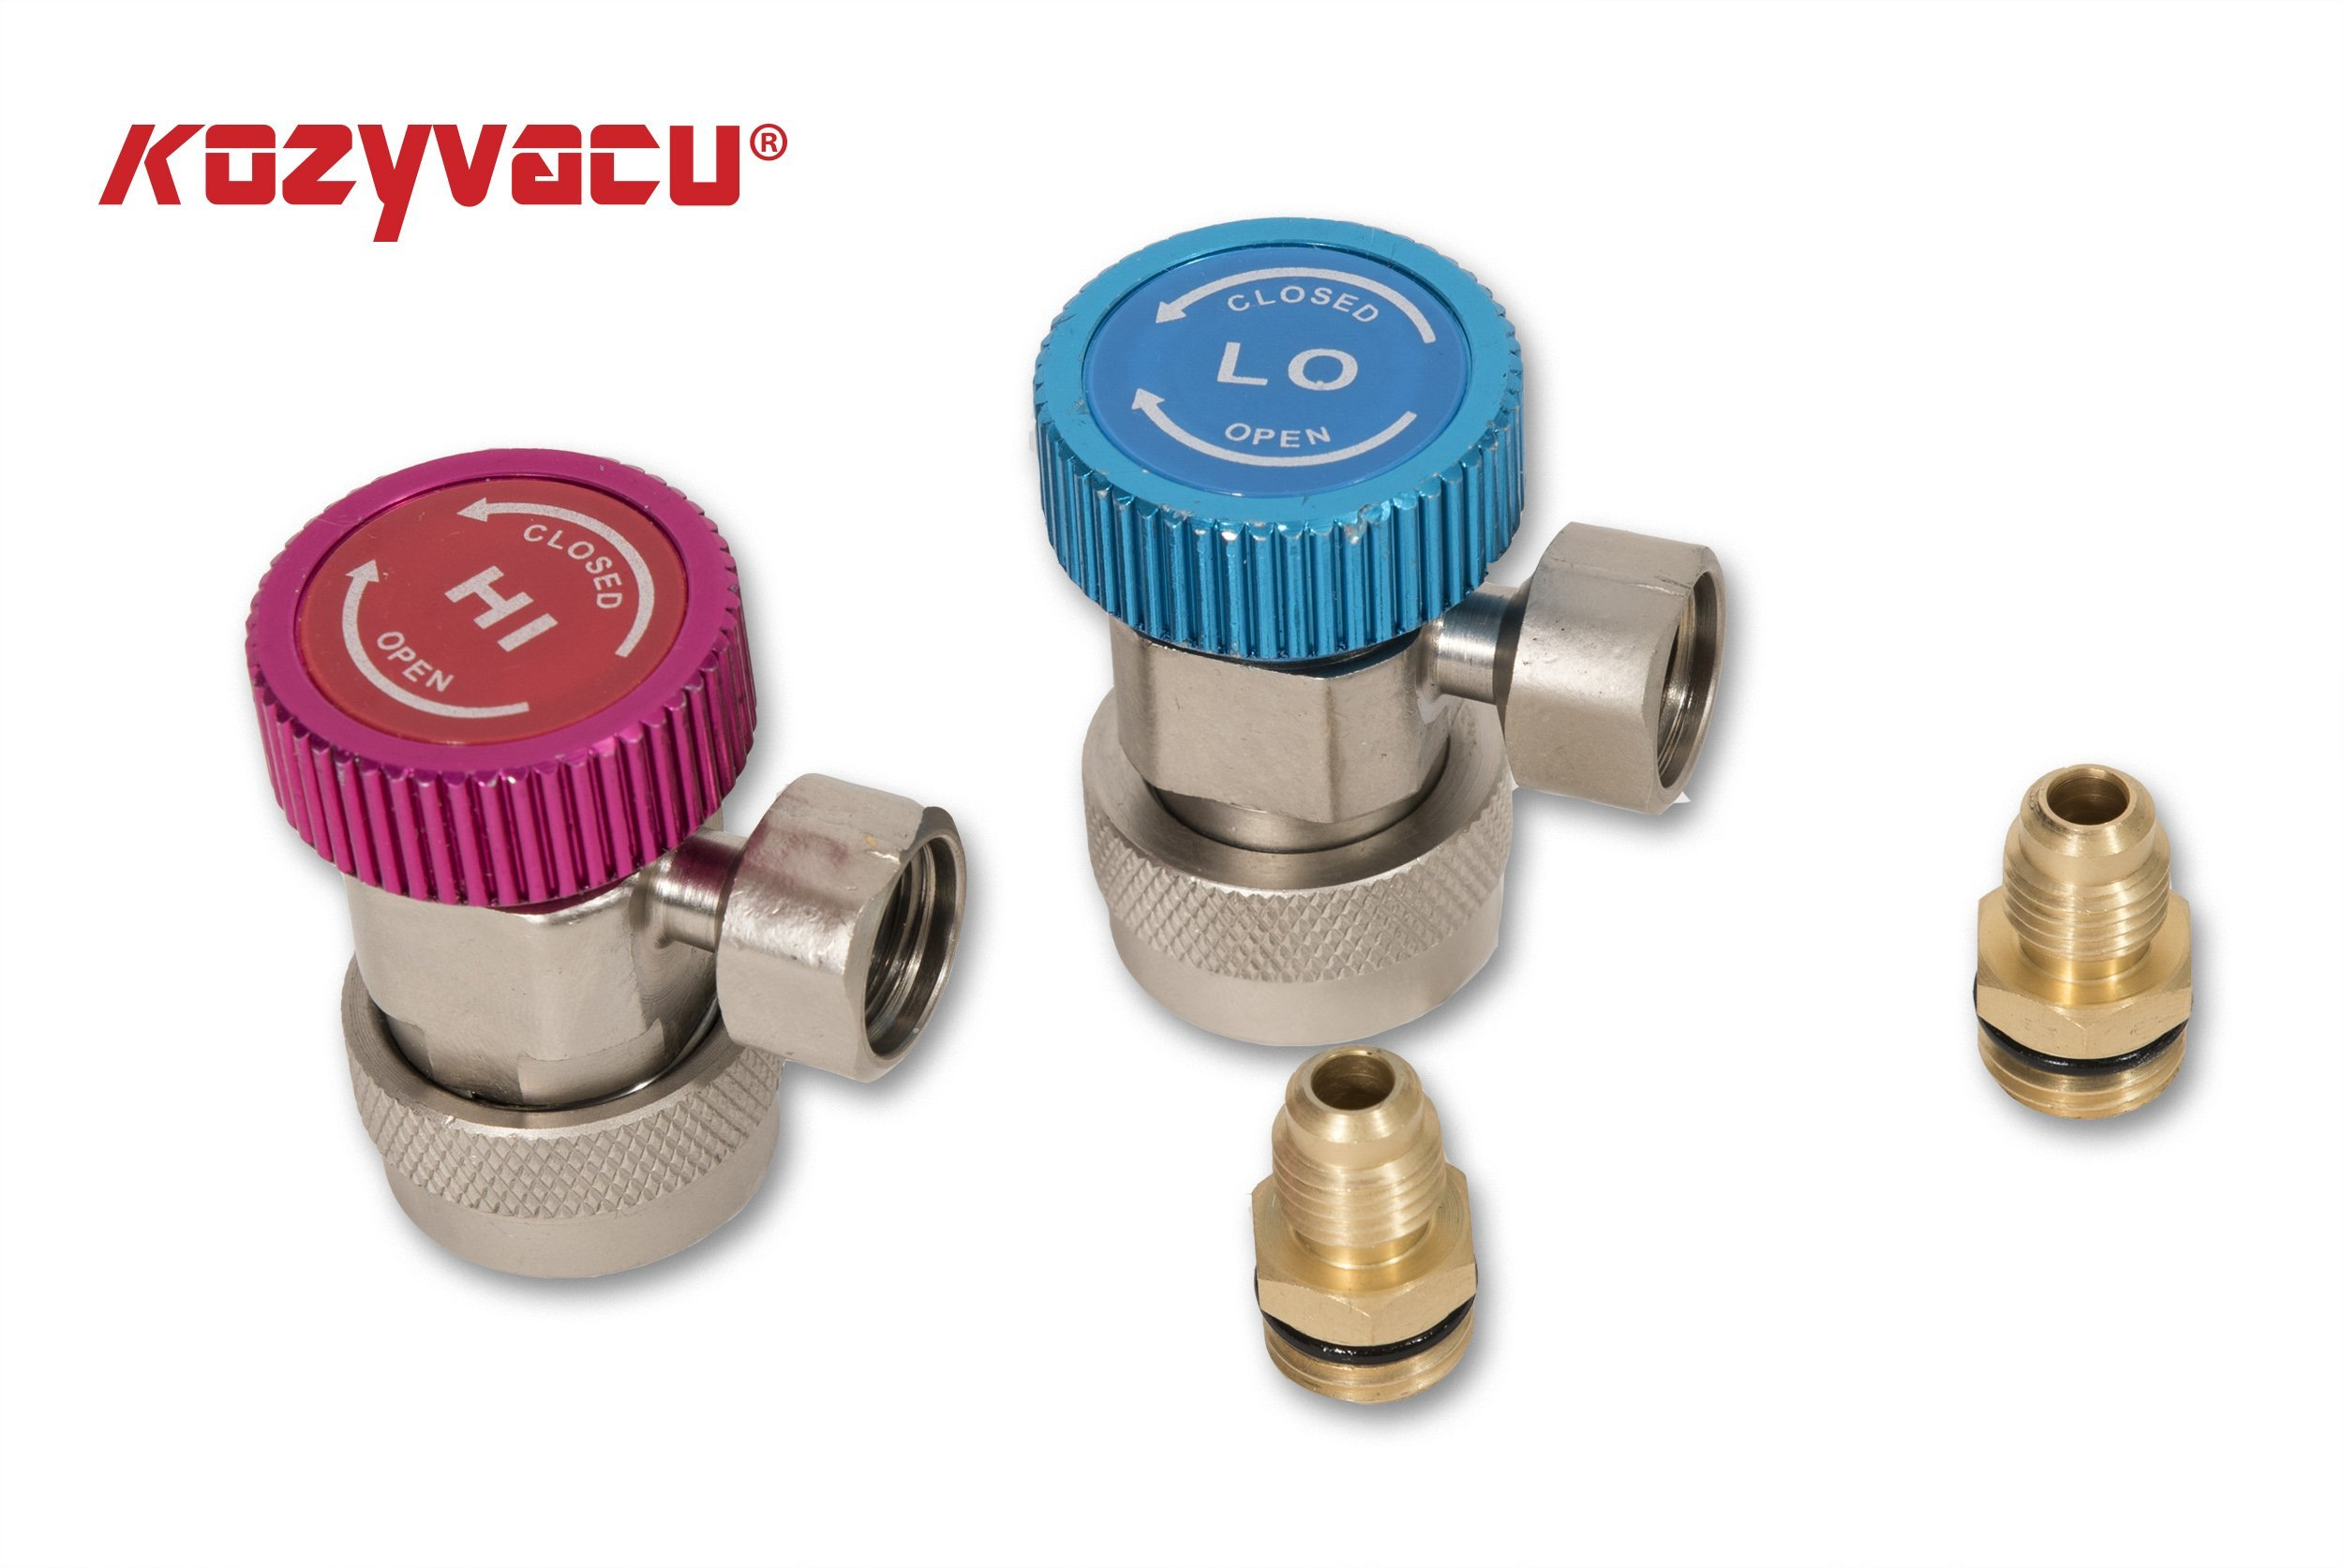 Kozyvacu Adjustable R134A Adapter Fittings Quick Coupler High Low AC Freon Manifold Gauge Hose Conversion kit, 1/4'' SAE HVAC by Kozyvacu (Image #5)